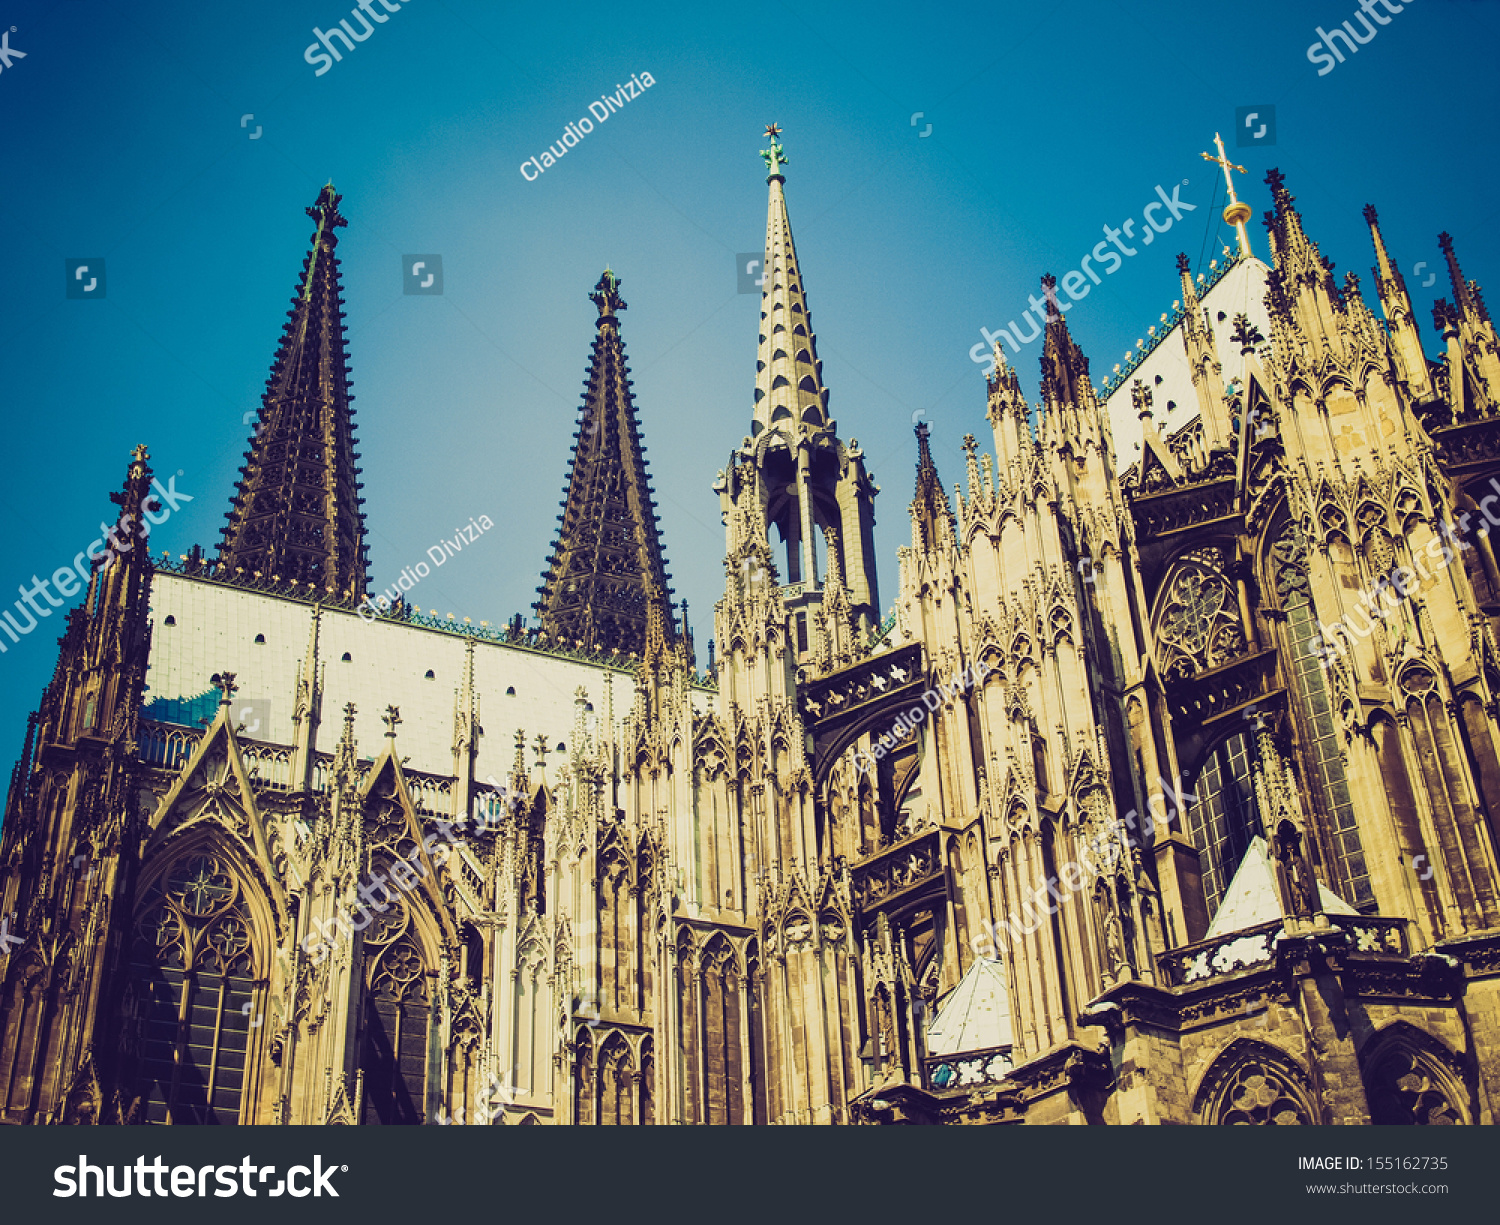 vintage looking koelner dom cologne cathedral stock photo 155162735 shutterstock. Black Bedroom Furniture Sets. Home Design Ideas